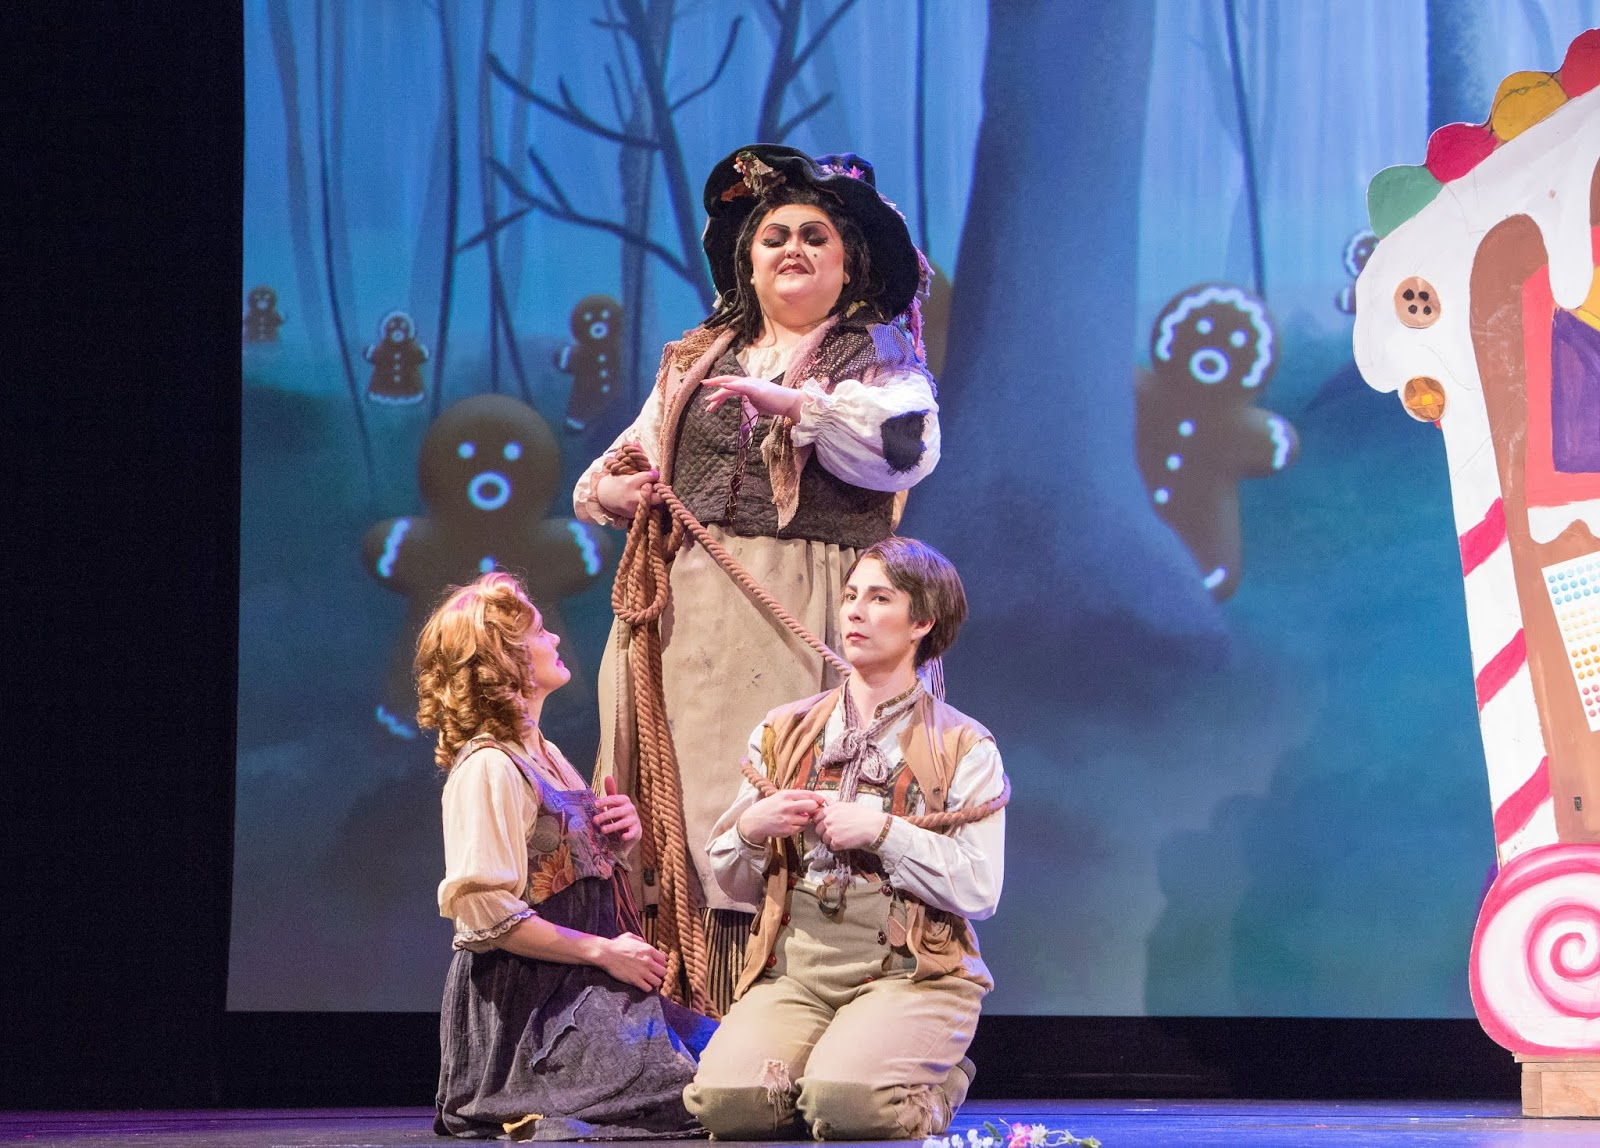 IN PERFORMANCE: (from left to right) soprano JOANN MARTINSON DAVIS as Gretel, mezzo-soprano GRETCHEN KRUPP as Die Knusperhexe, and mezzo-soprano STEPHANIE FOLEY DAVIS as Hänsel in Greensboro Opera's March 2019 production of Engelbert Humperdinck's HÄNSEL UND GRETEL [Photograph © by VanderVeen Photographers]